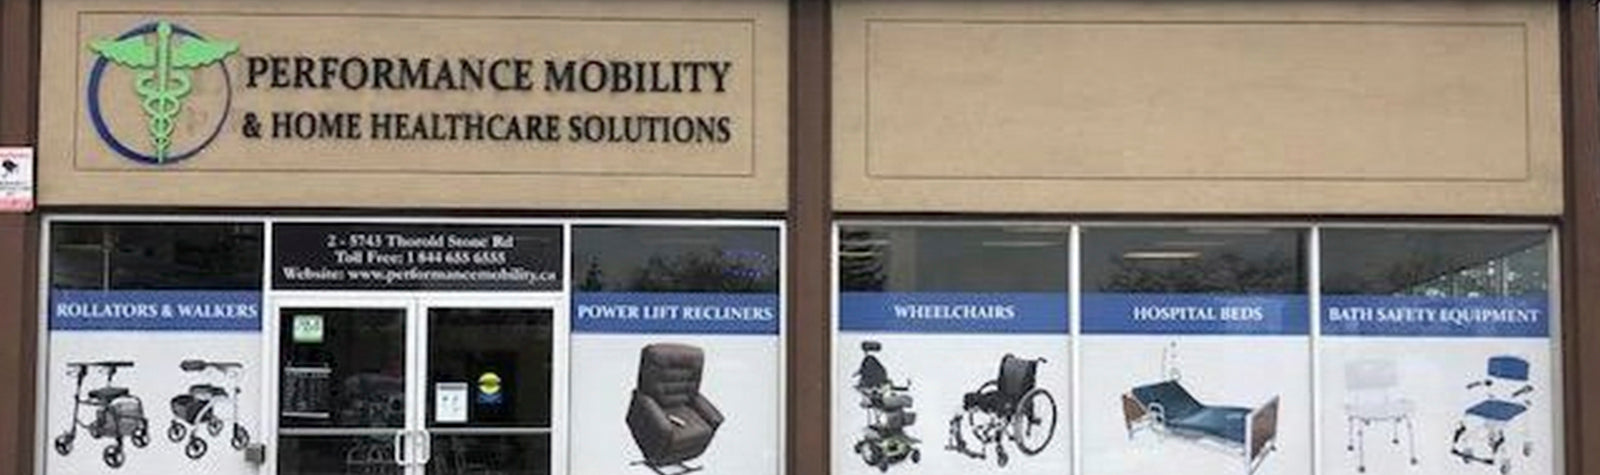 Performance Mobility & Home Healthcare Solutions